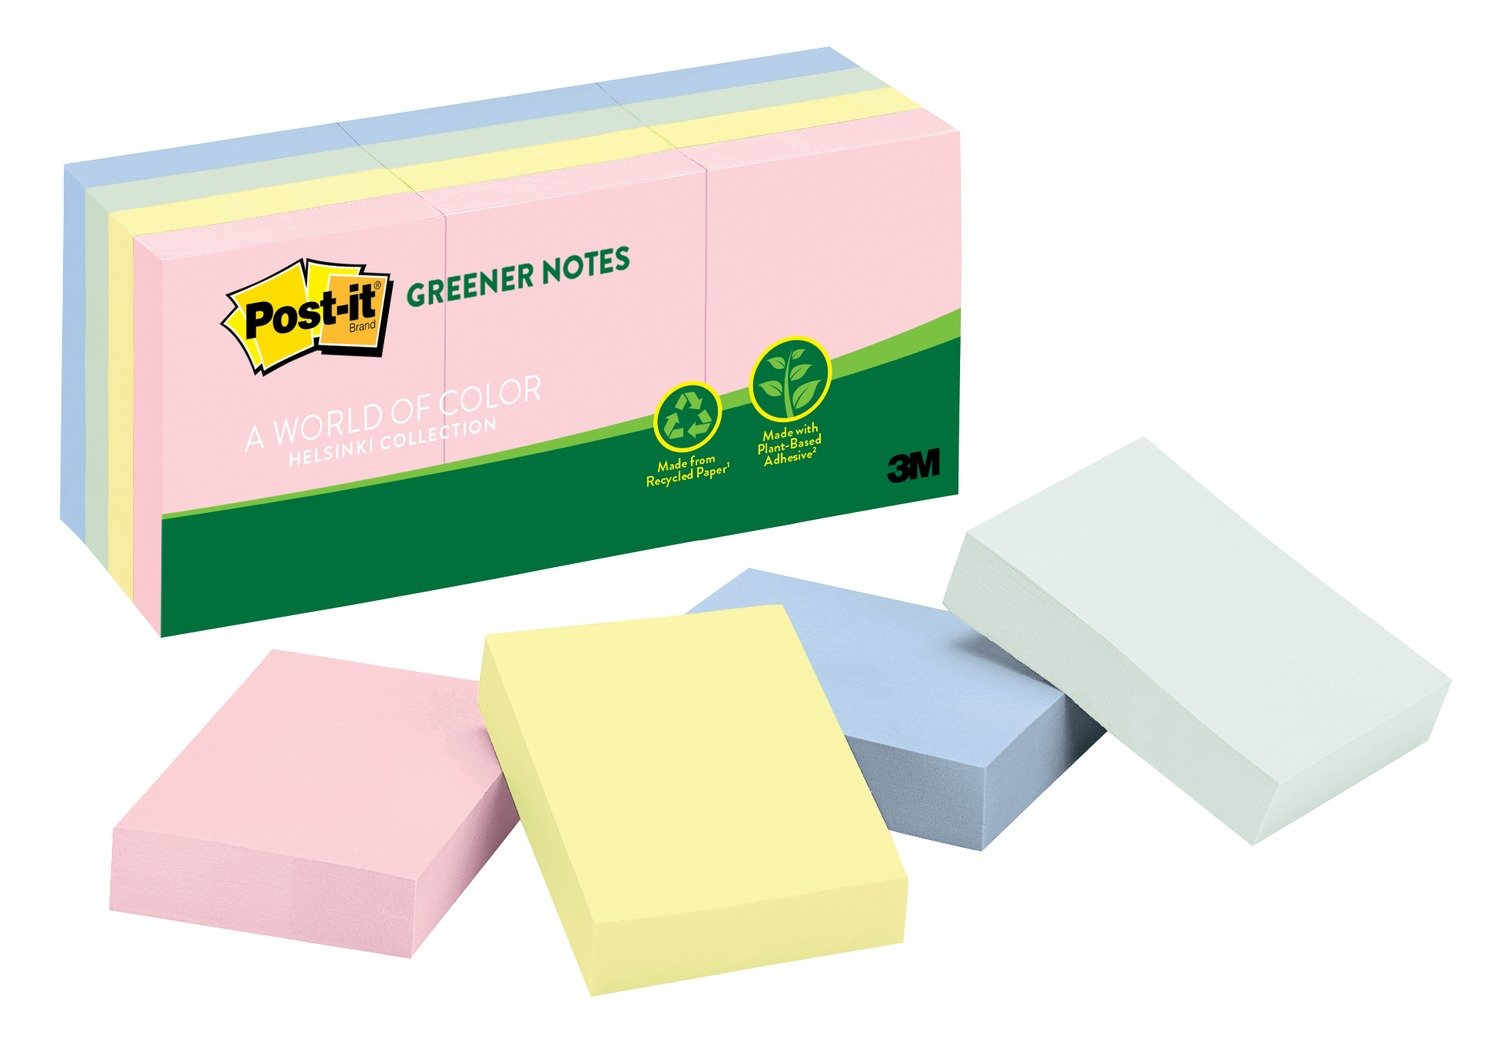 Post-it Greener Notes, 1.5 in x 2 in, Helsinki Collection, 12 Pads/Pack (653-RP-A)